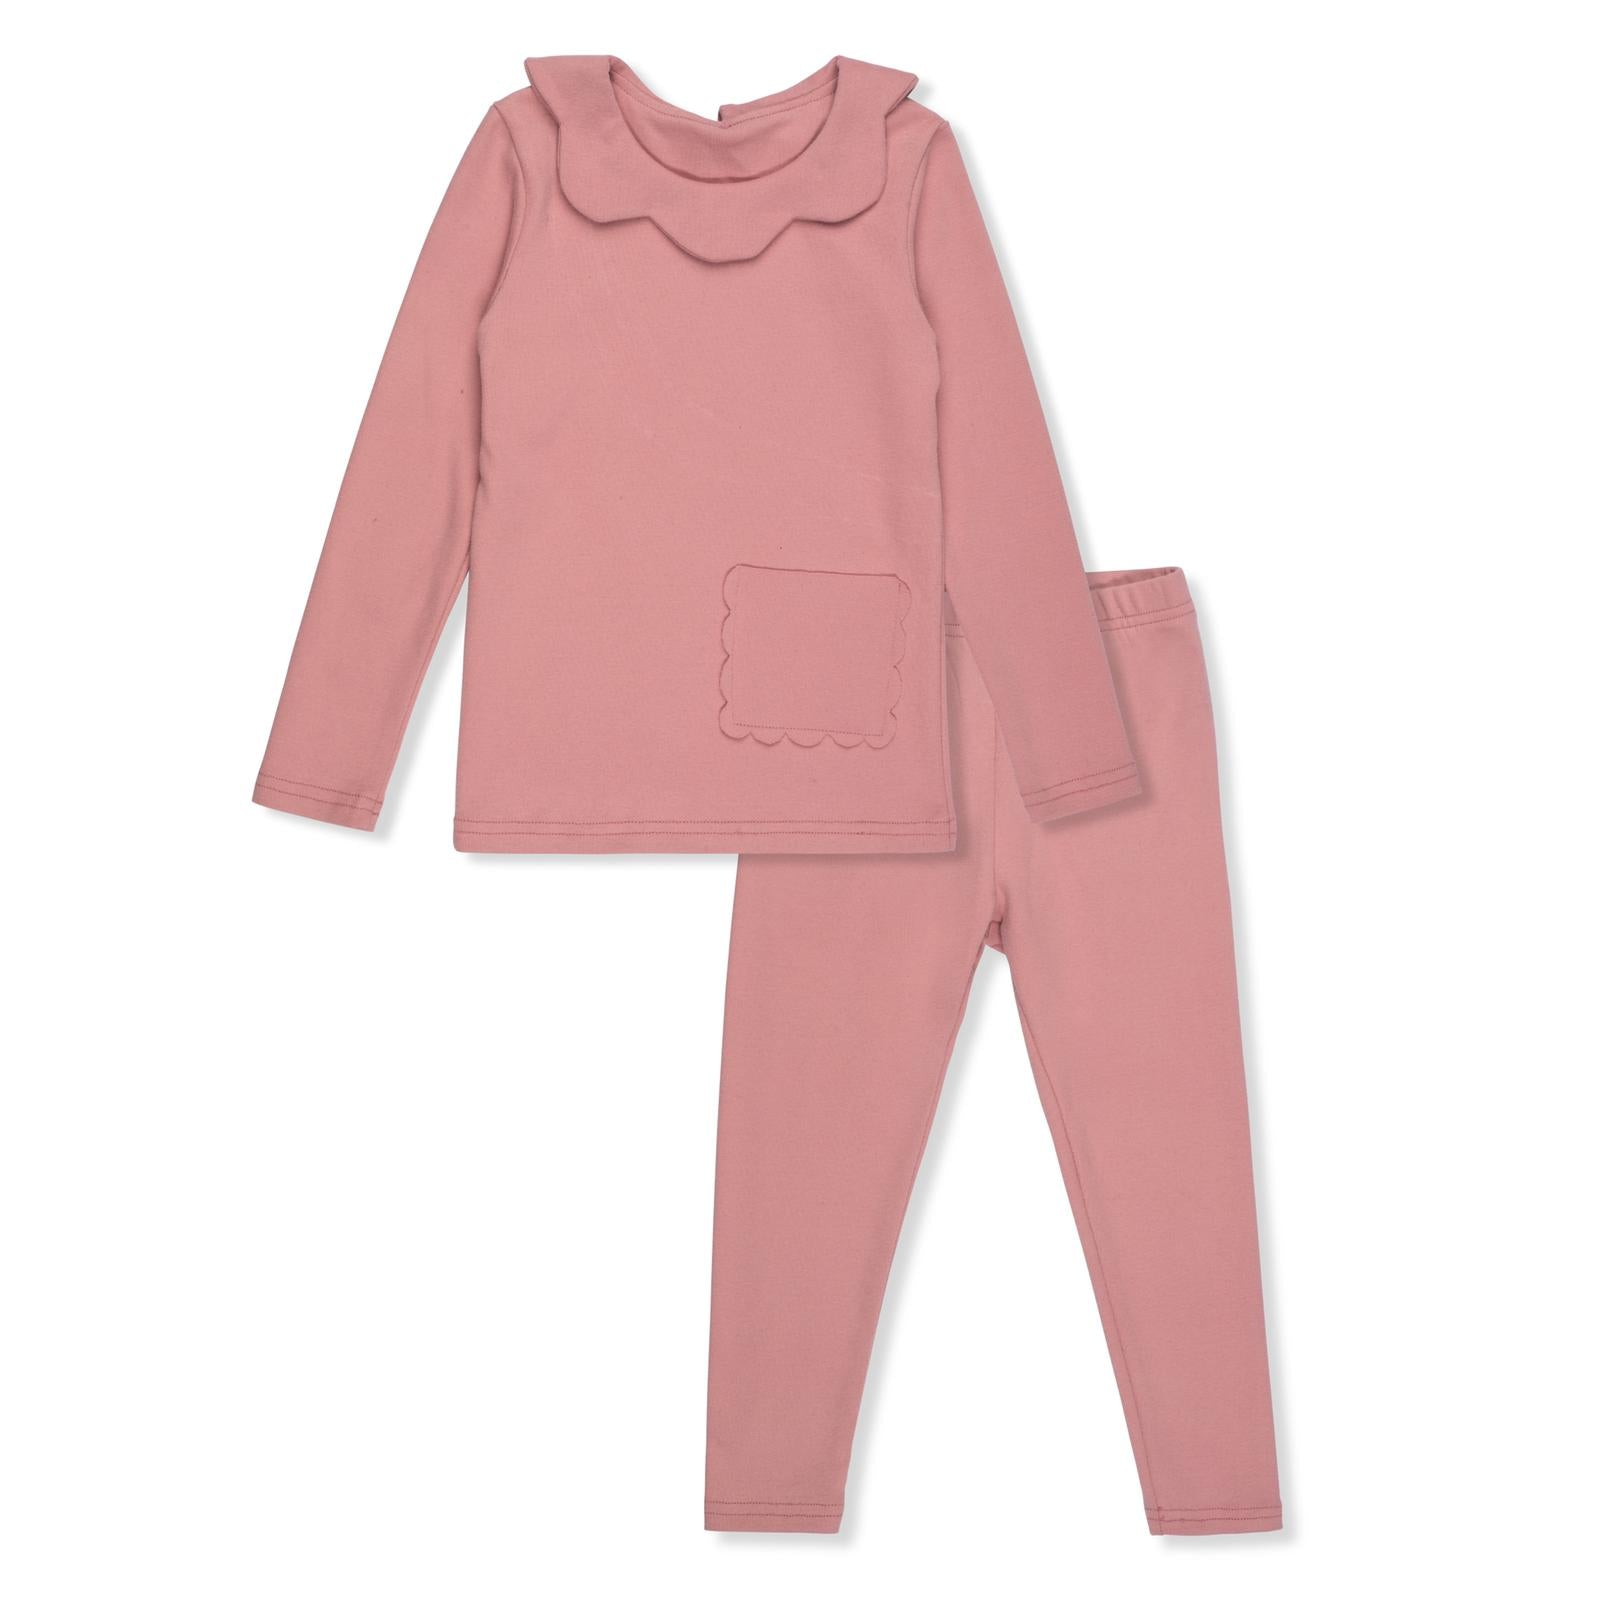 Bon Rever Pale Pink Scalloped Pjs